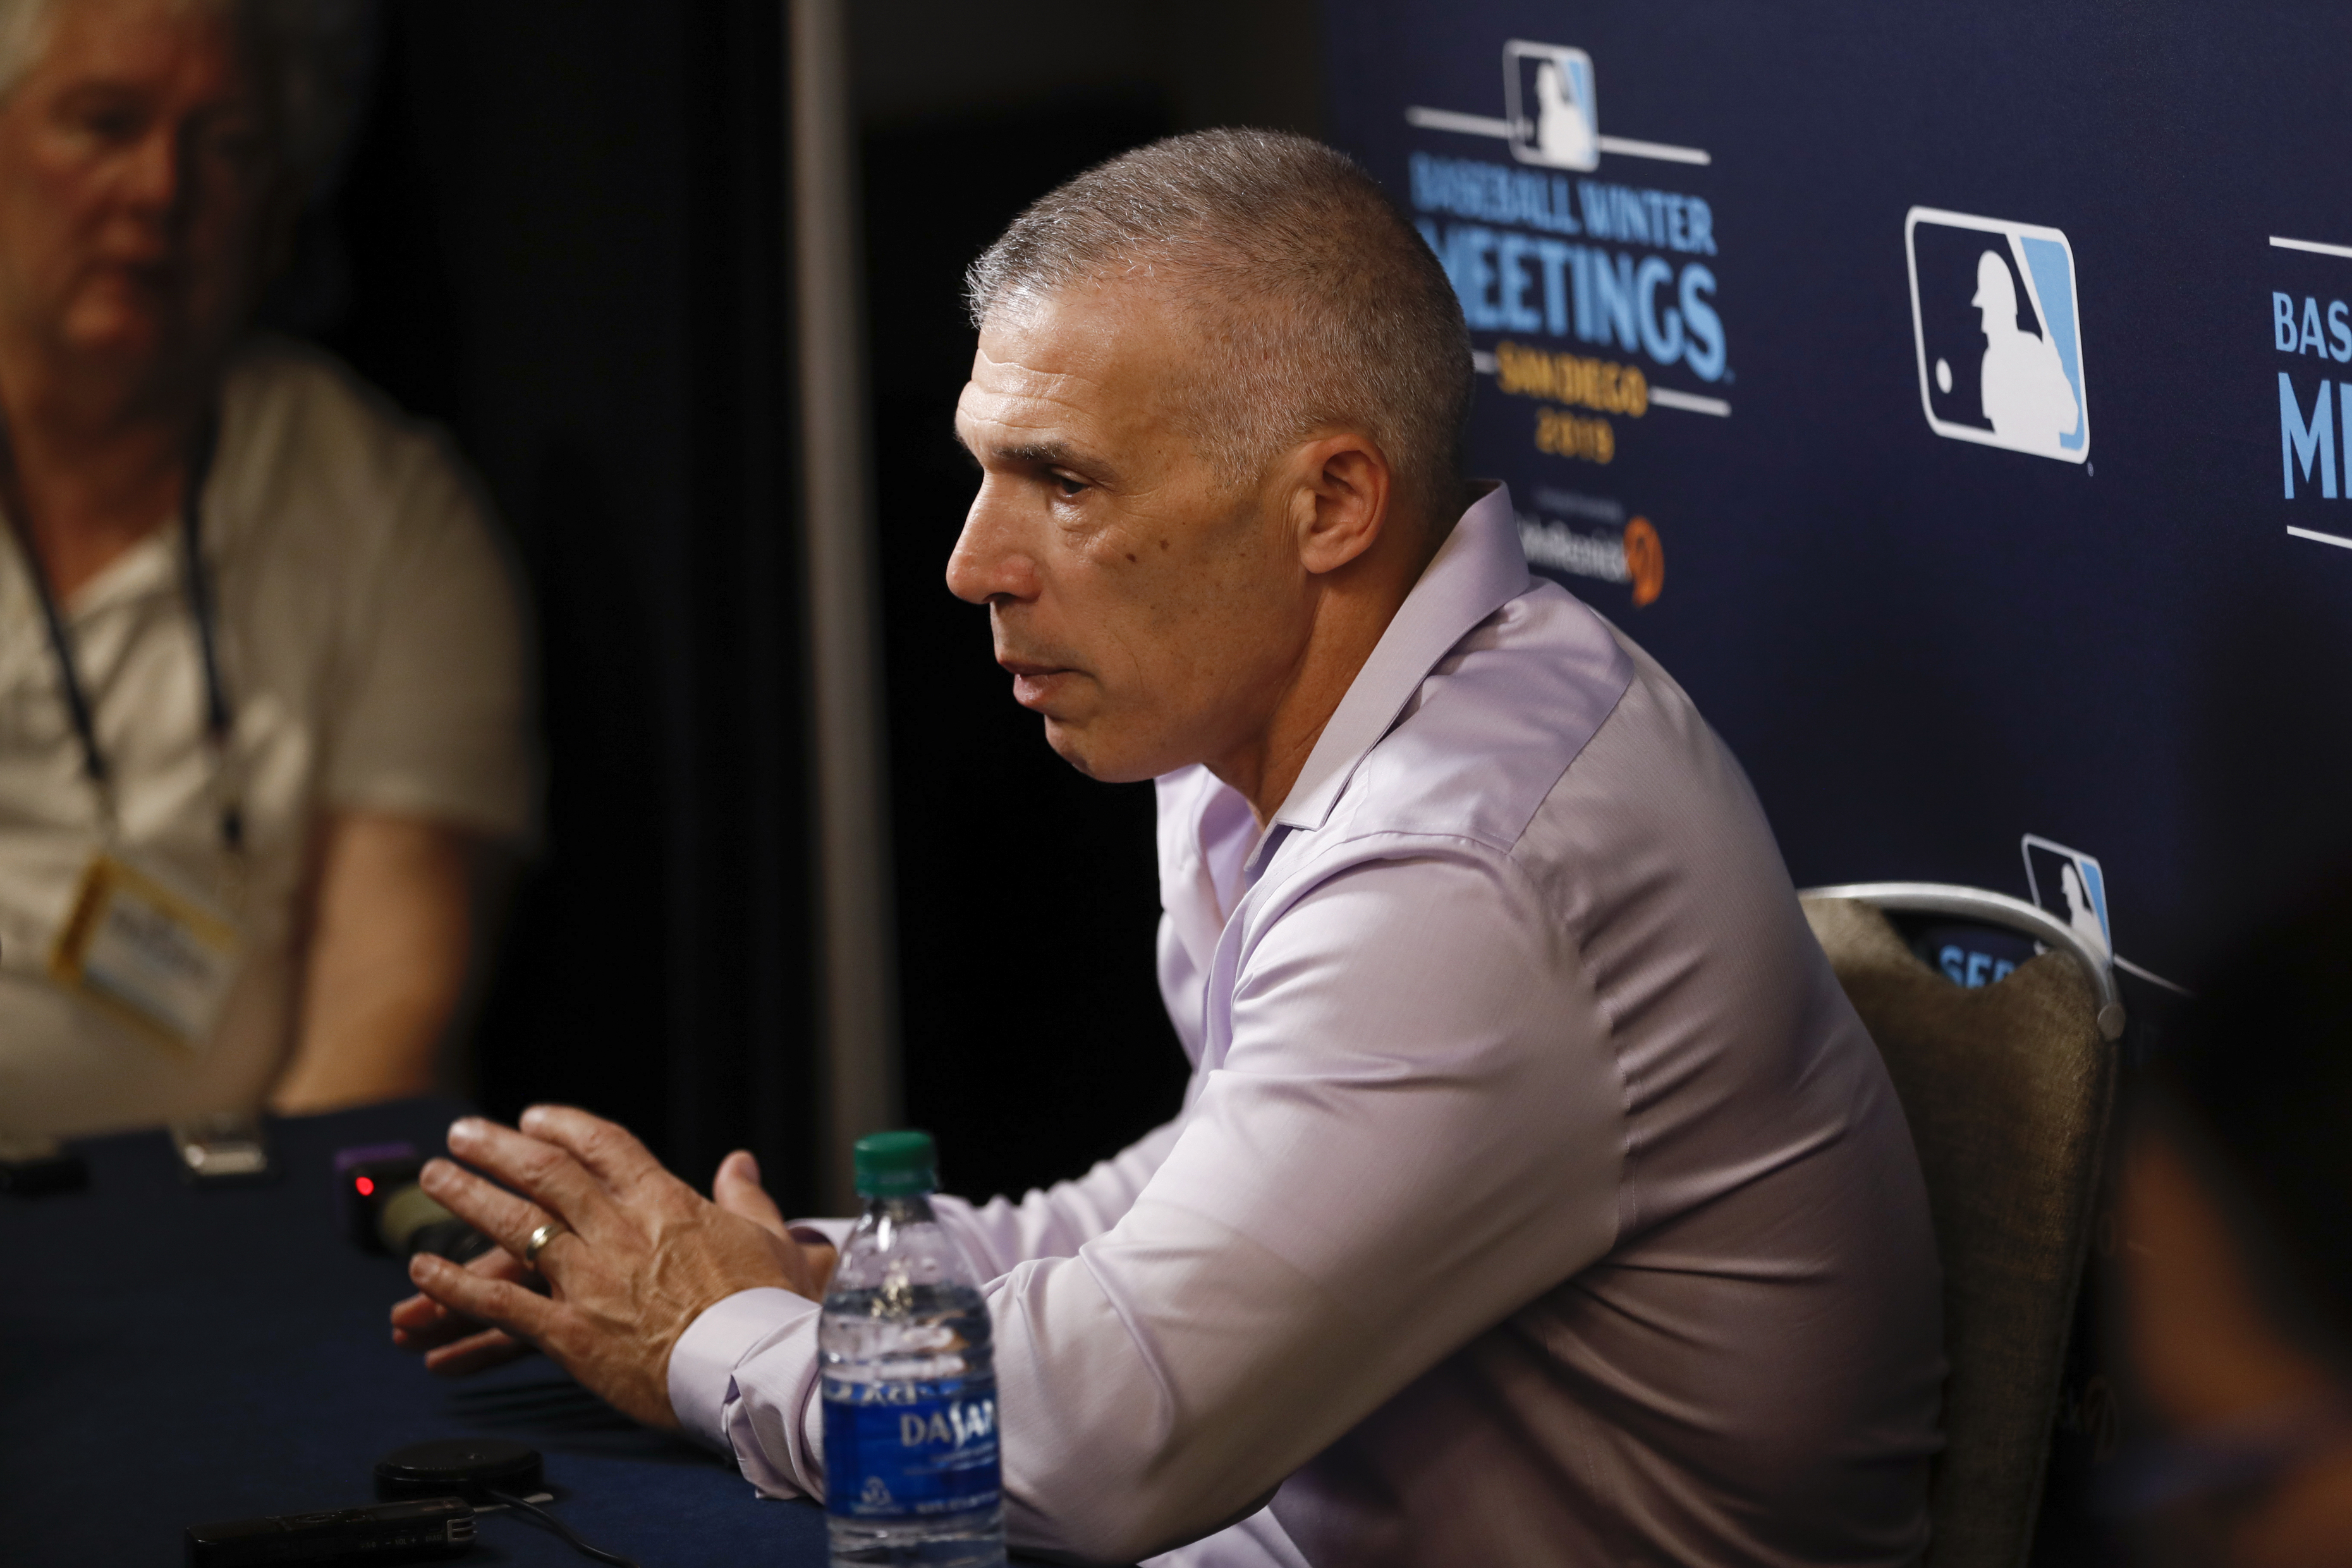 MLB rumors: No 'what-ifs' for ex-Yankees manager Joe Girardi over Astros' sign-stealing scandal